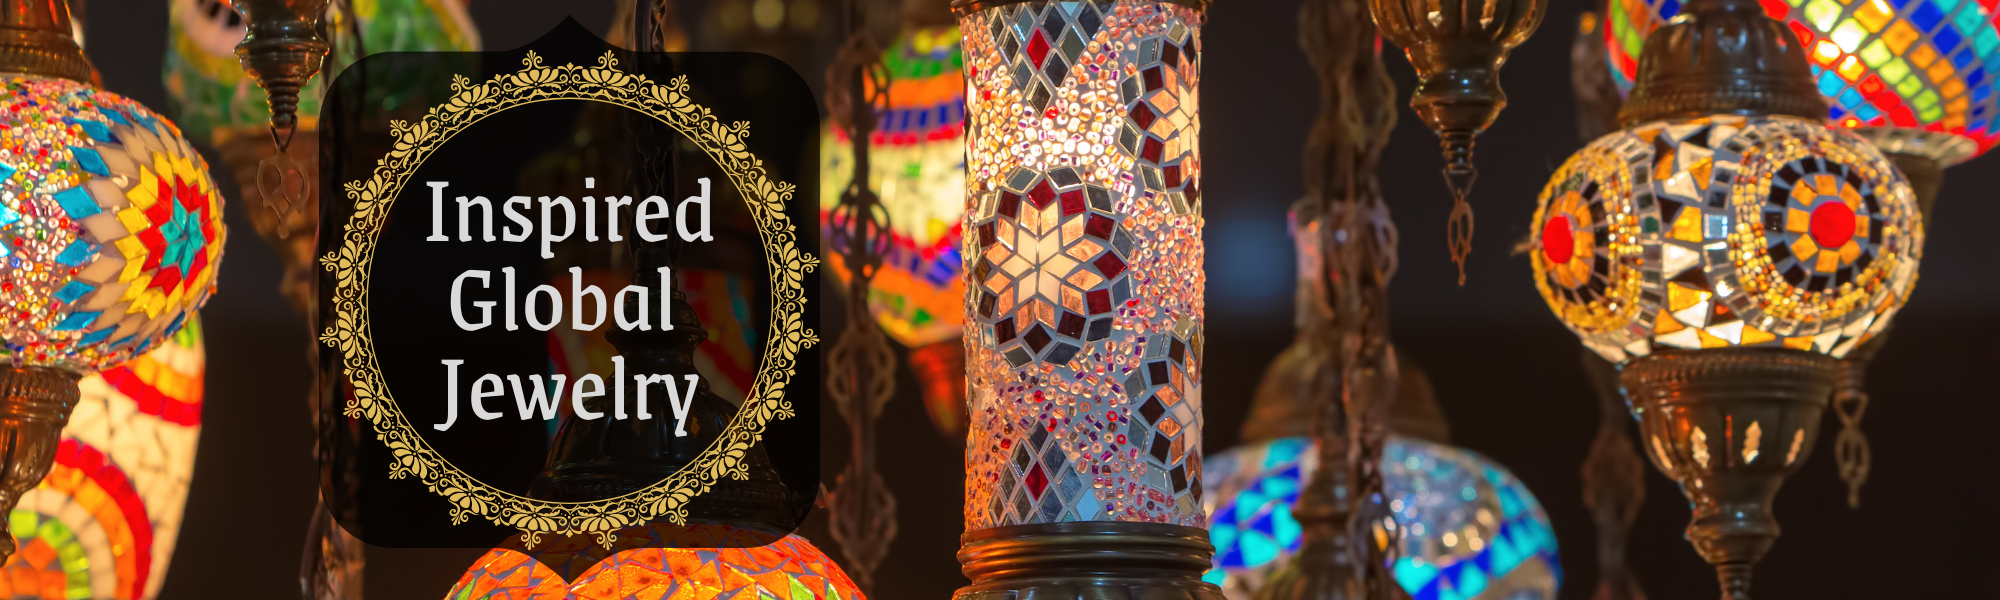 Global jewelry banner with moroccan lanterns in background